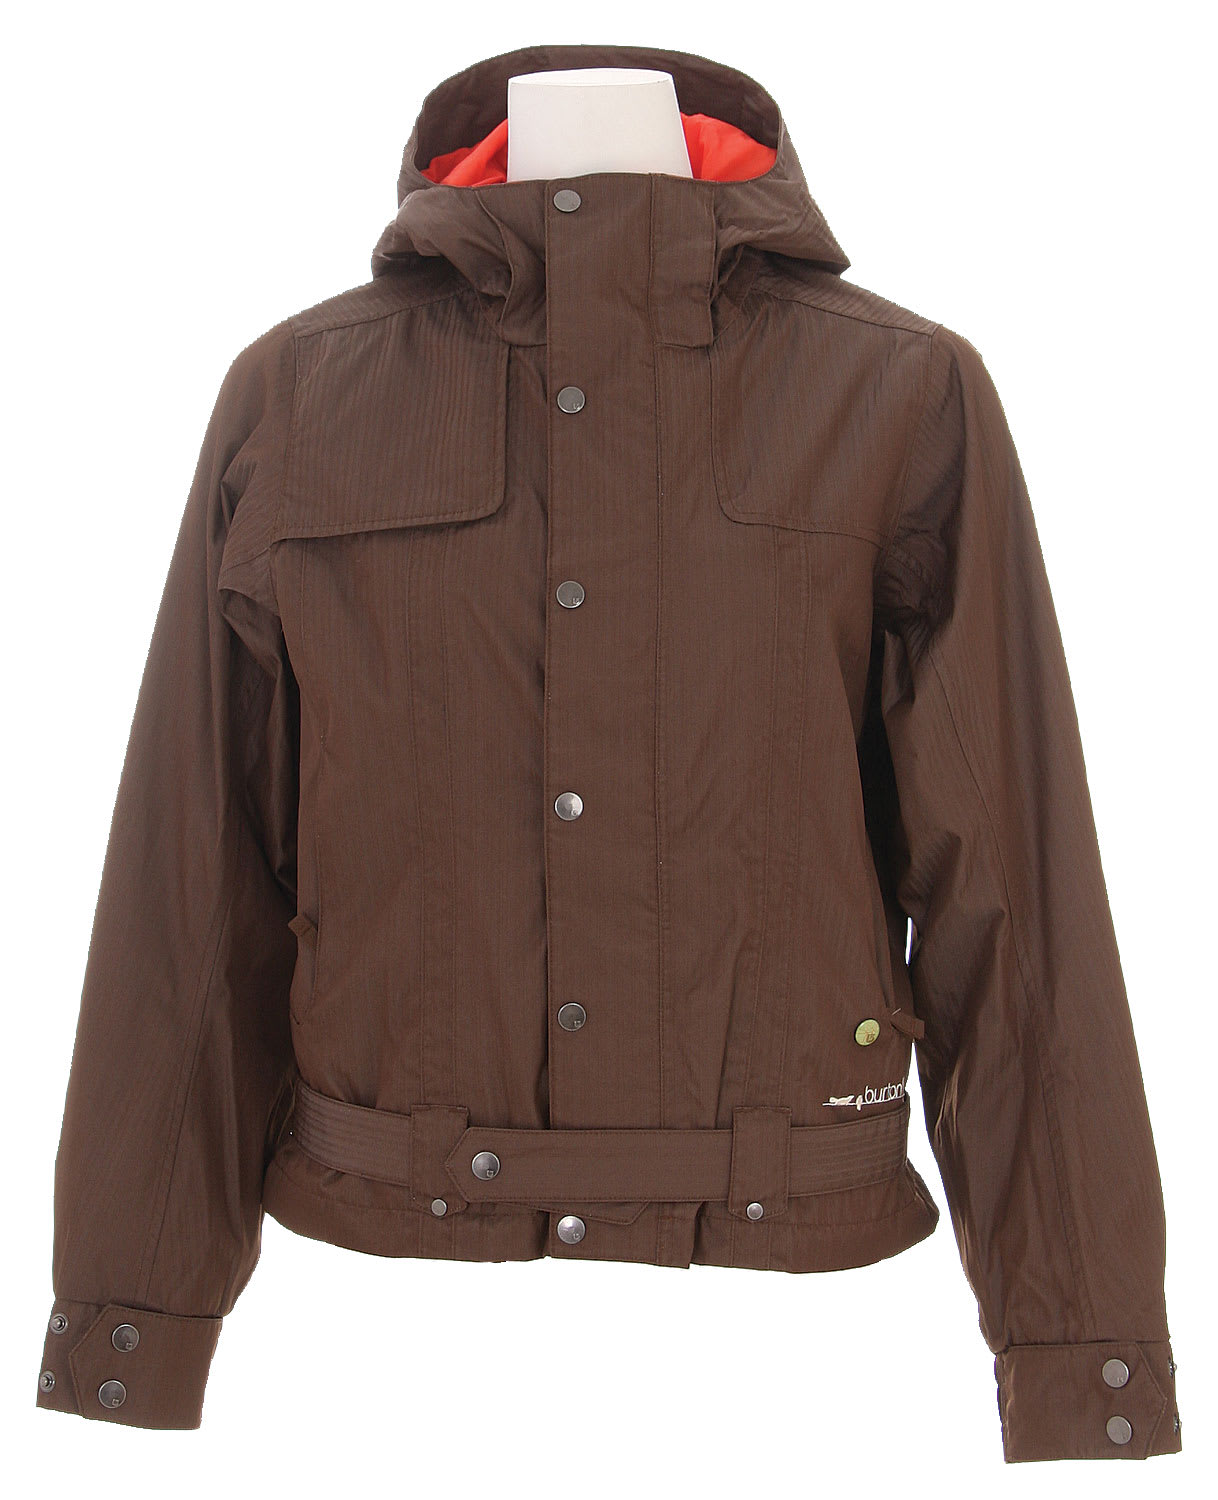 Shop for Burton After Hours Snowboard Jacket Roasted Brown - Women's